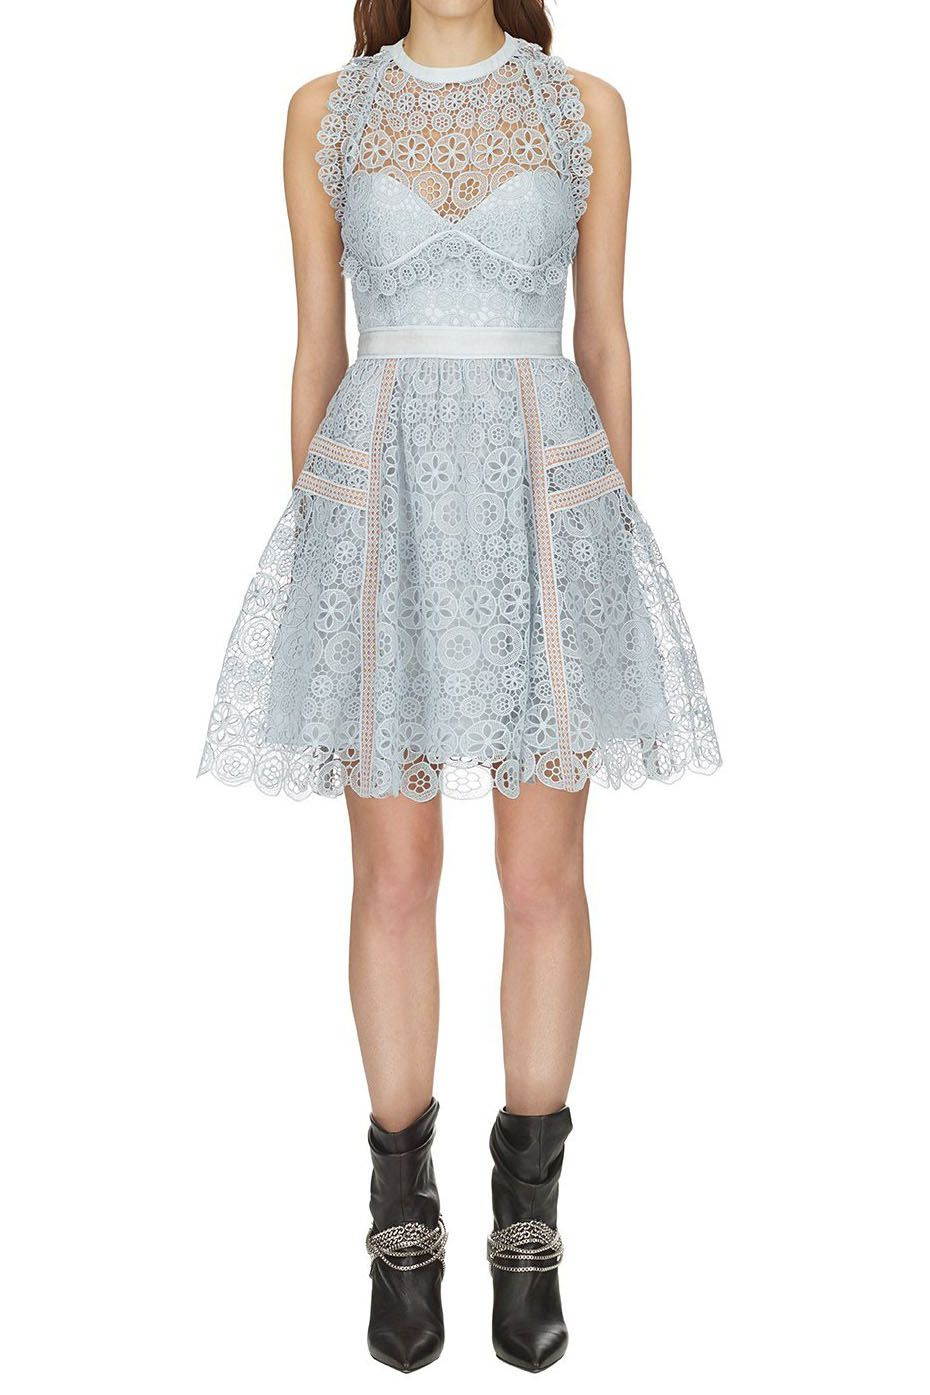 4c50893fc625 Self Portrait Pale Blue Circle Floral Lace Mini Dress | self ...